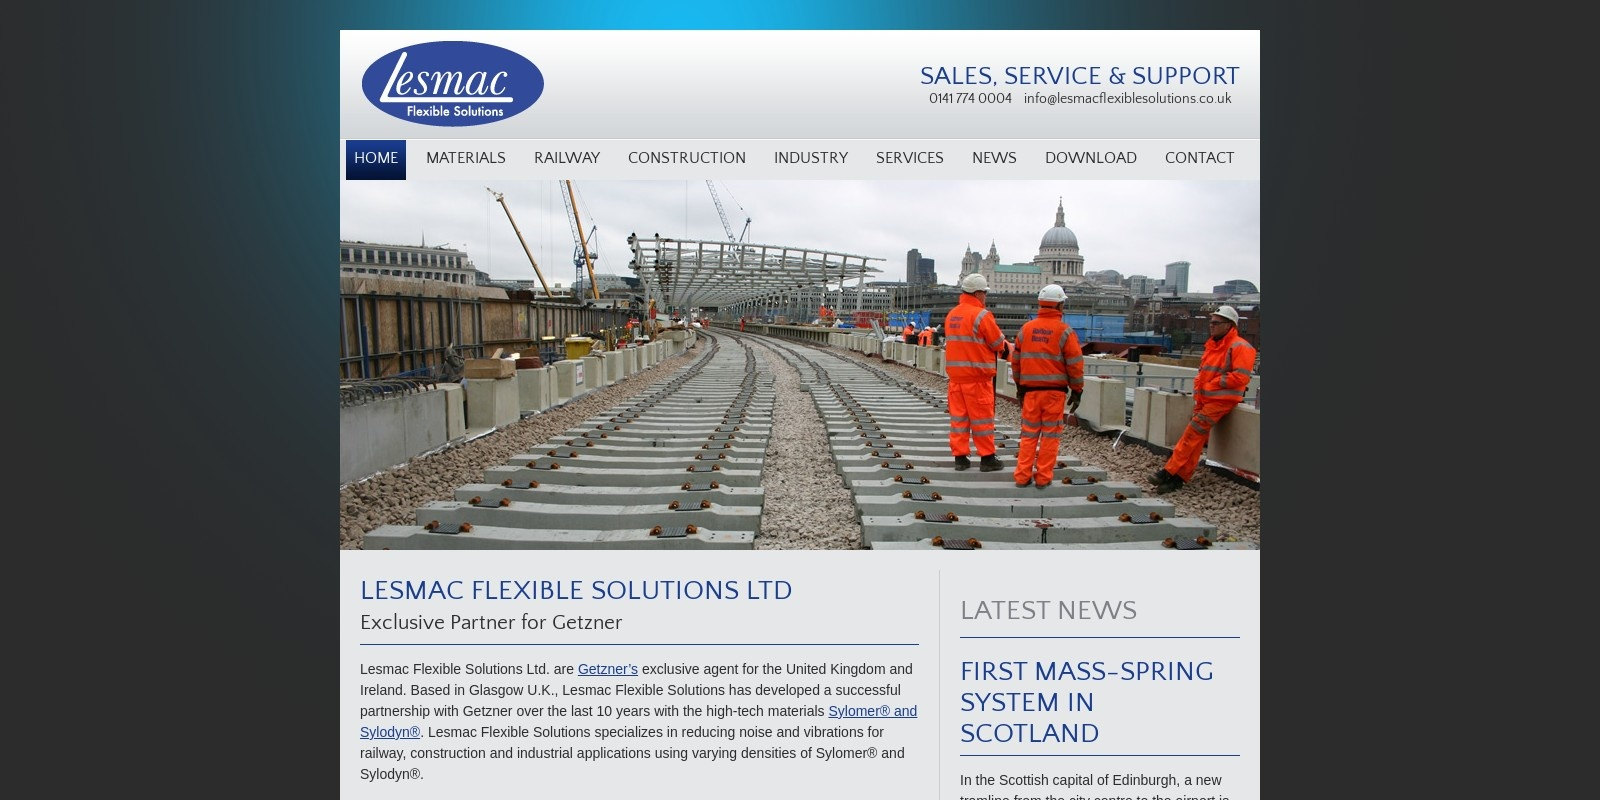 Preview of http://www.lesmacflexiblesolutions.co.uk/